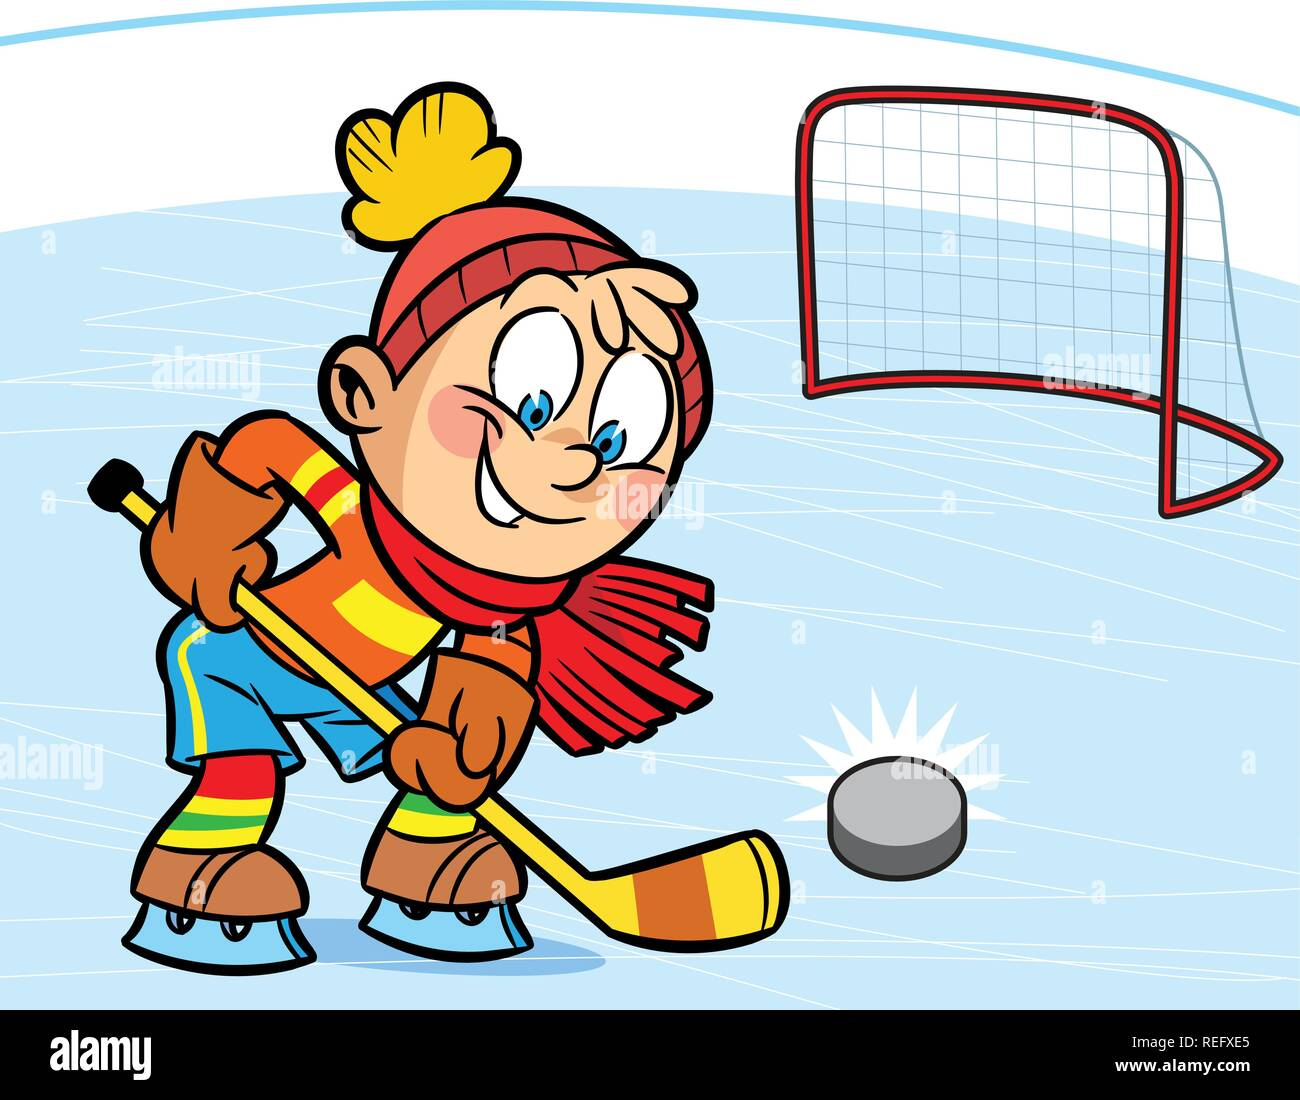 A Boy Playing Hockey He Scored The Puck Into The Goal Illustration Done In Cartoon Style Stock Vector Image Art Alamy